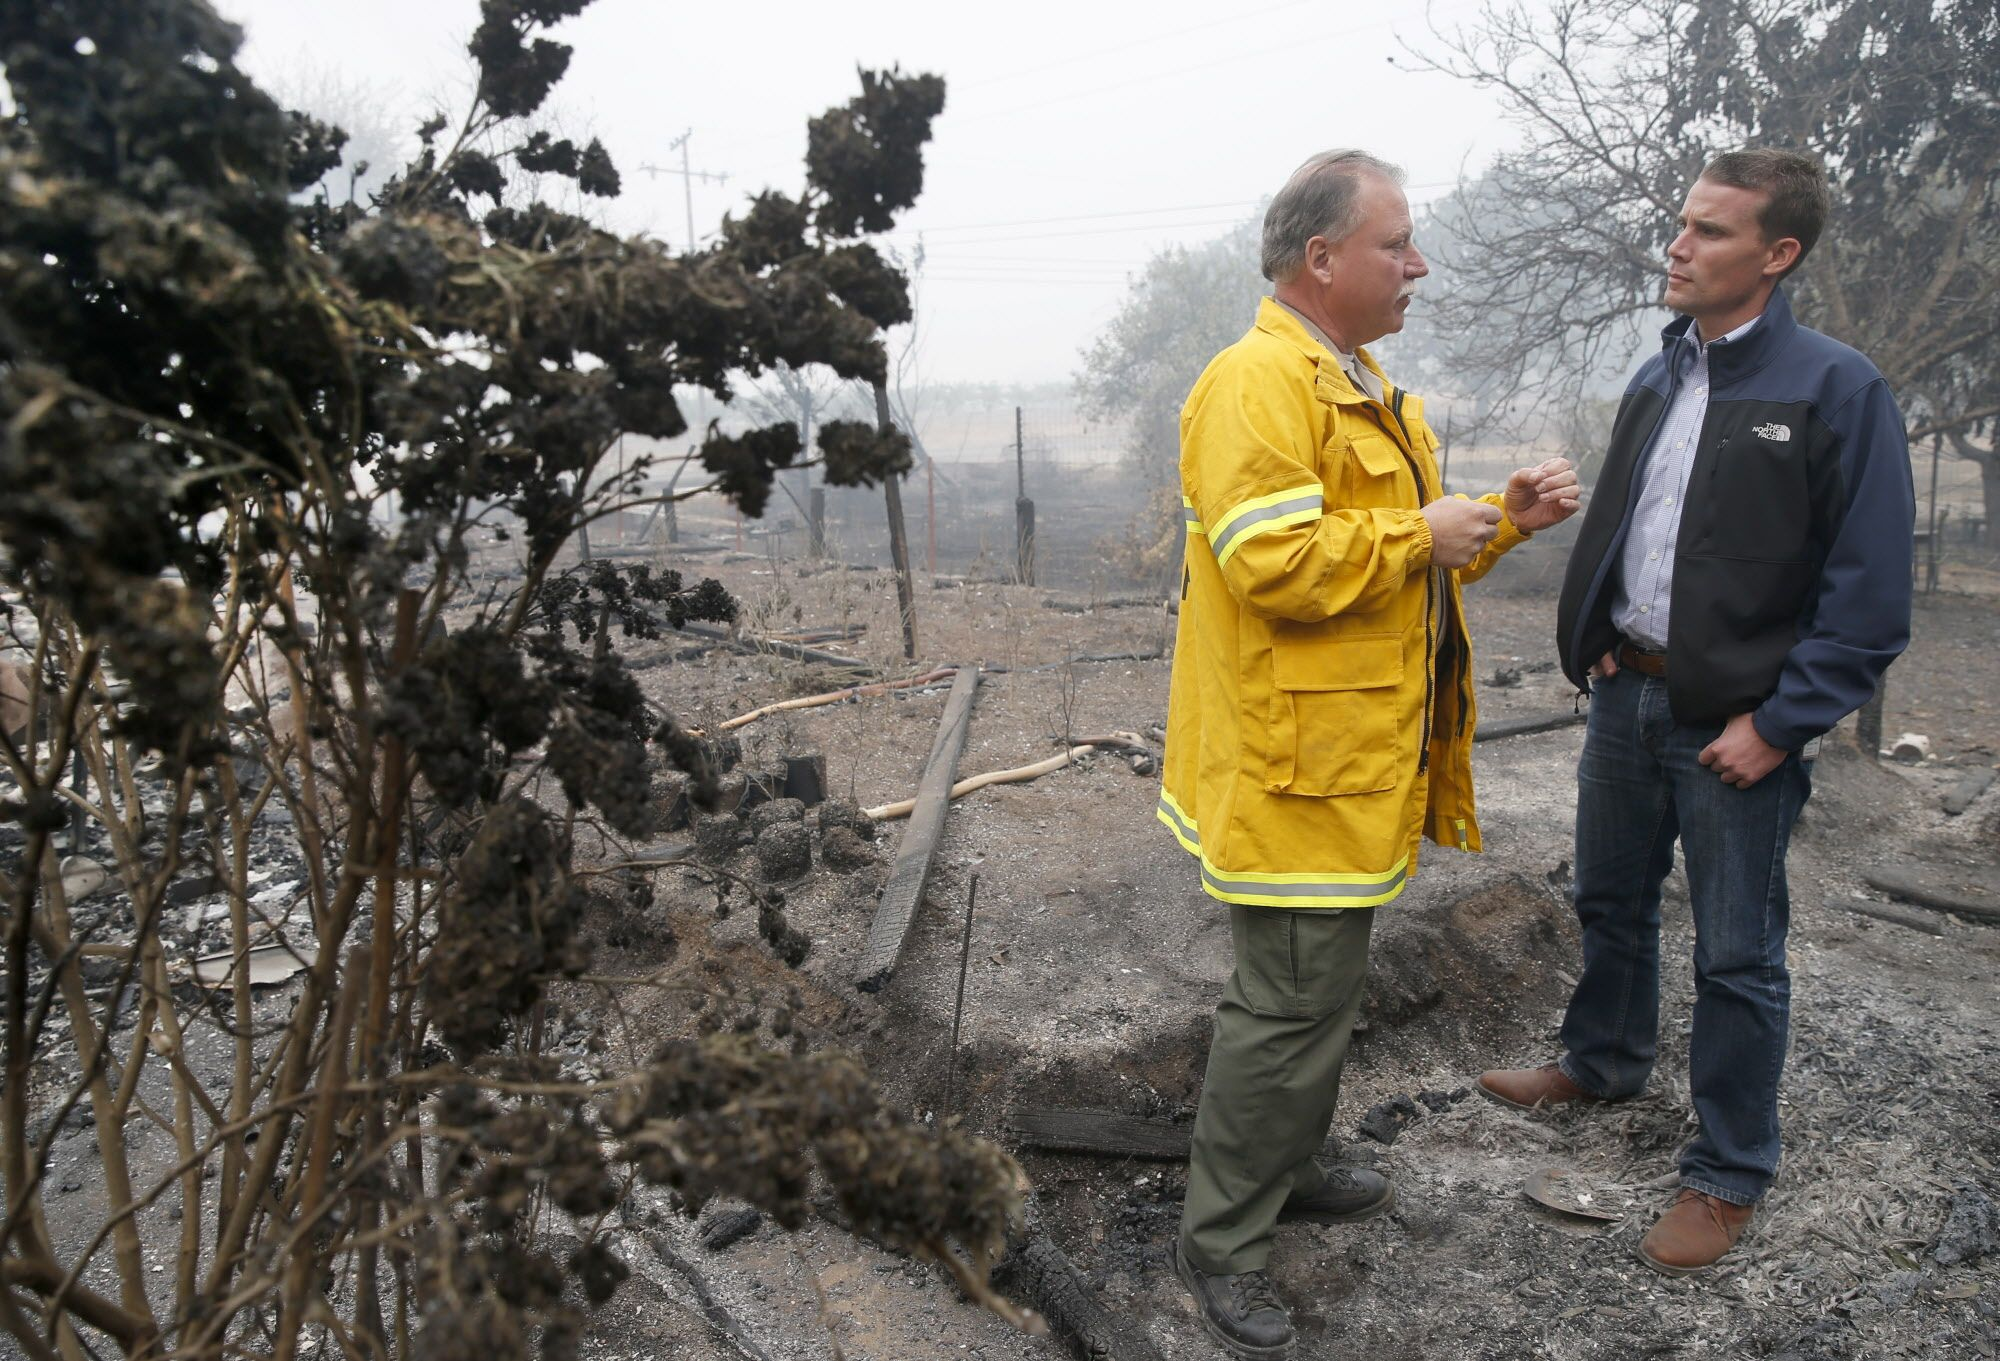 Mendocino Co. Sheriff Tom Allman briefs state Sen. Mike McGuire on Monday morning's fire next to singed marijuana plants (left) that were growing at a home destroyed by fire on East Road in Redwood Valley, Calif. on Tuesday Oct. 10, 2017. Authorities have reported at least three people have died and 50 residences have been destroyed by the Redwood Complex Fire.